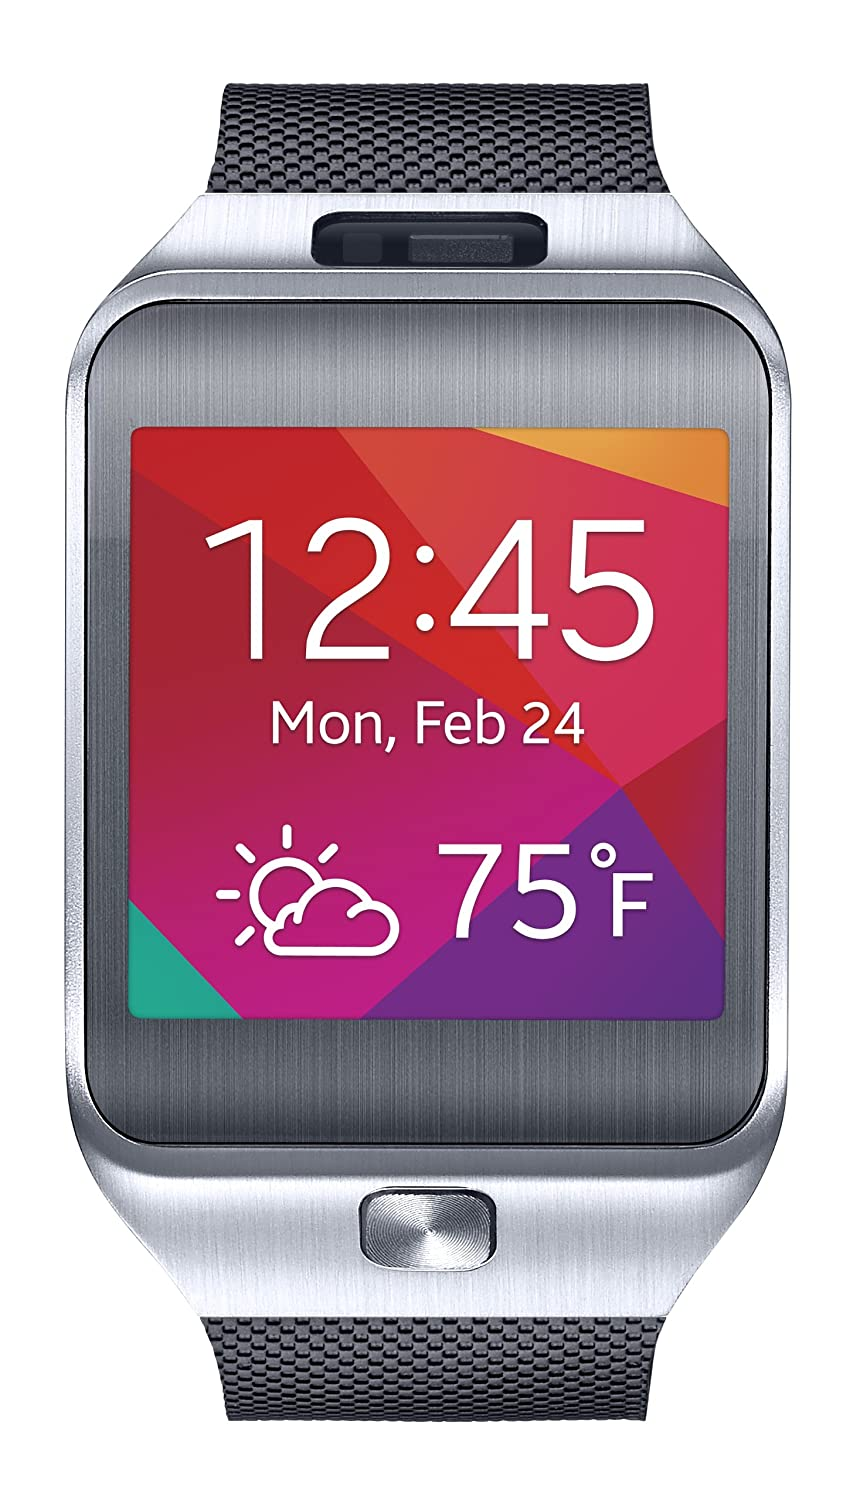 Samsung Gear 2 Smartwatch - Silver/Black (US Warranty) (Discontinued by Manufacturer)